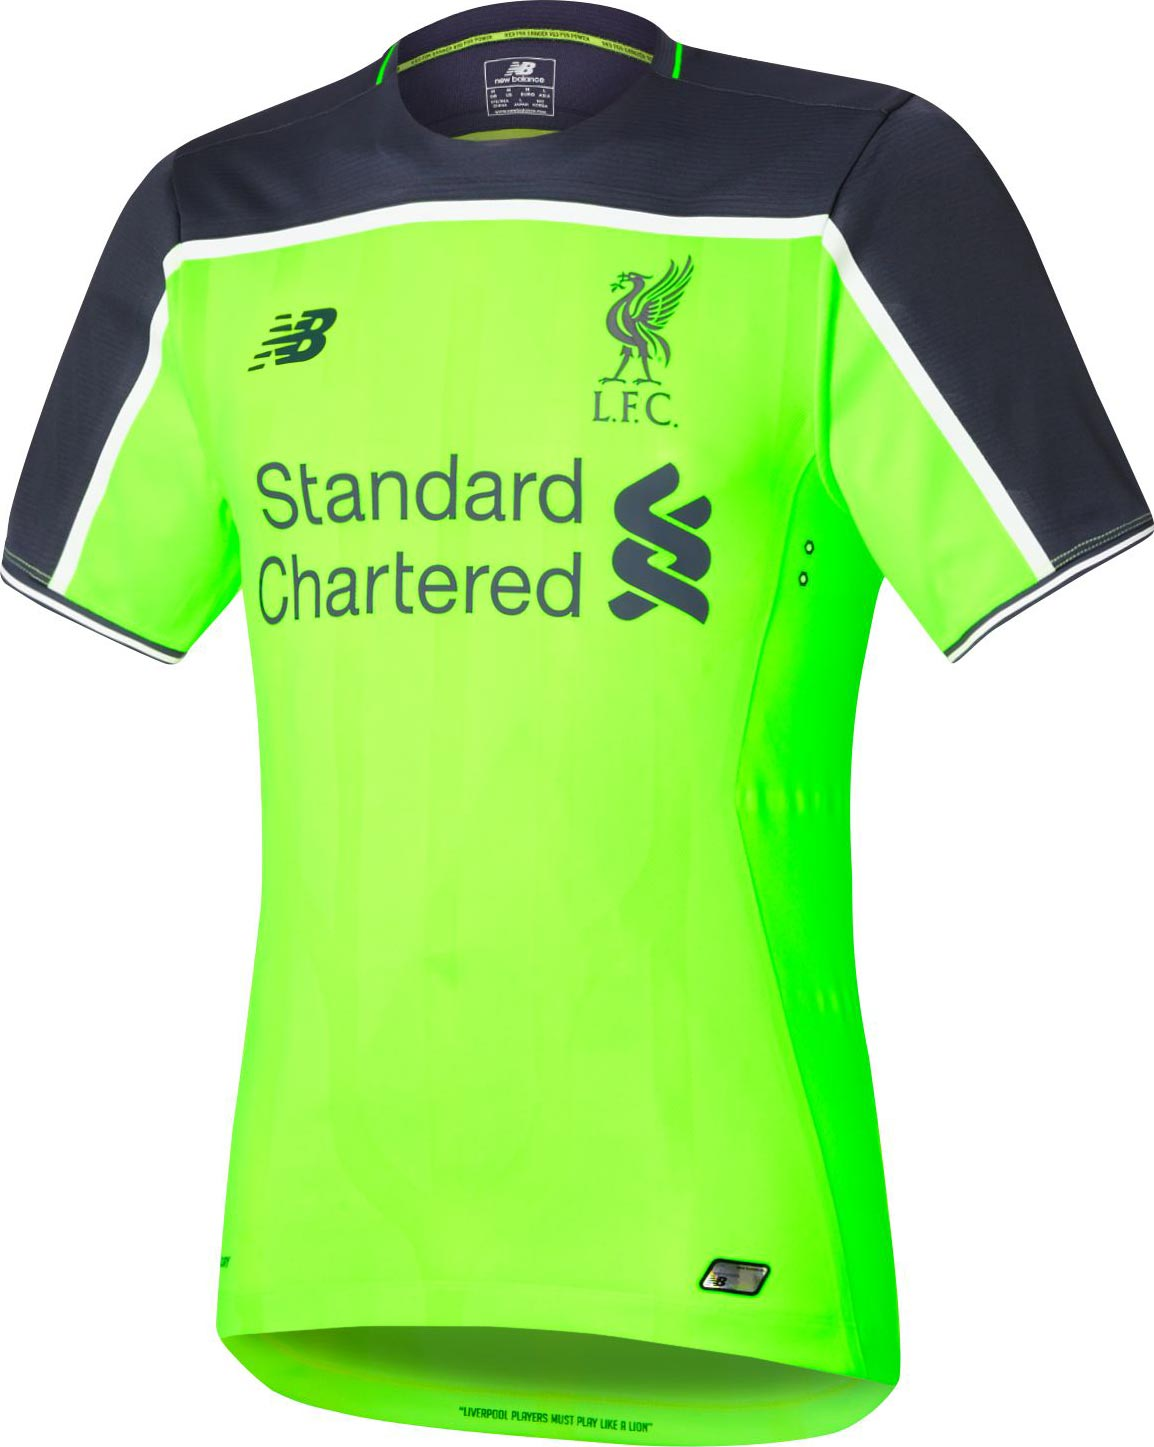 official photos 13e11 317e2 Liverpool 2016/17 Third Kit Launched